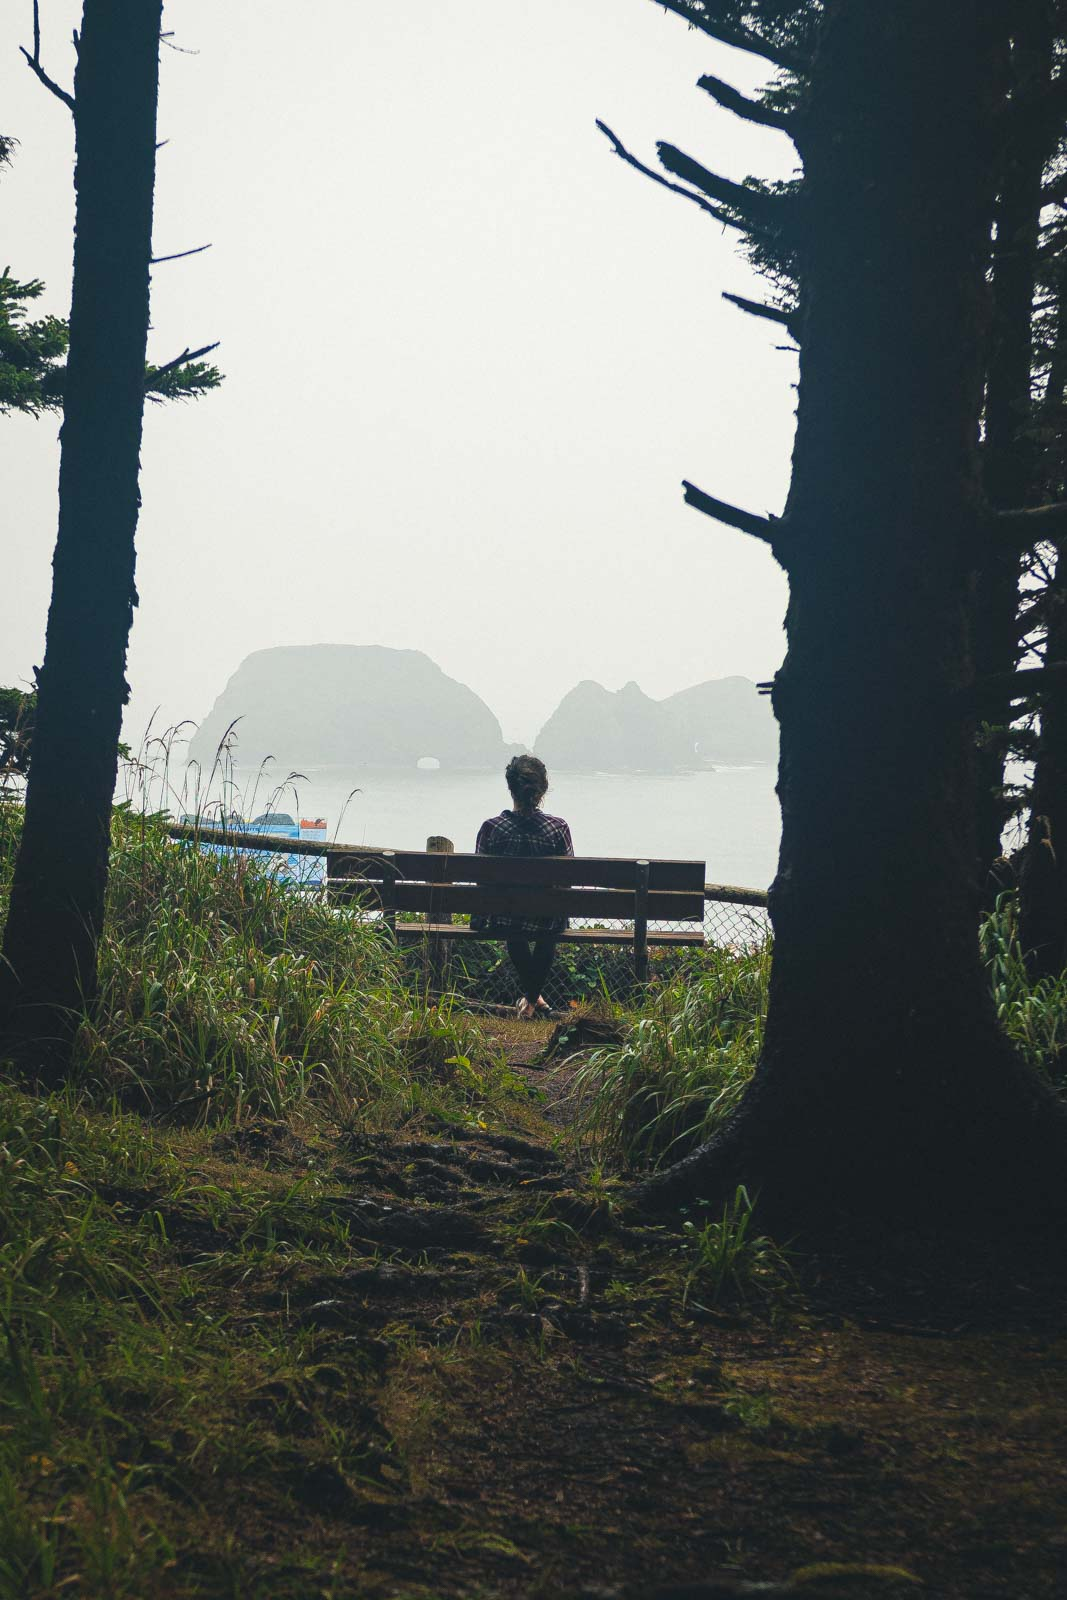 Person sitting on bench with trees looking out at ocean view near Cape Meares Oregon Lighthouse